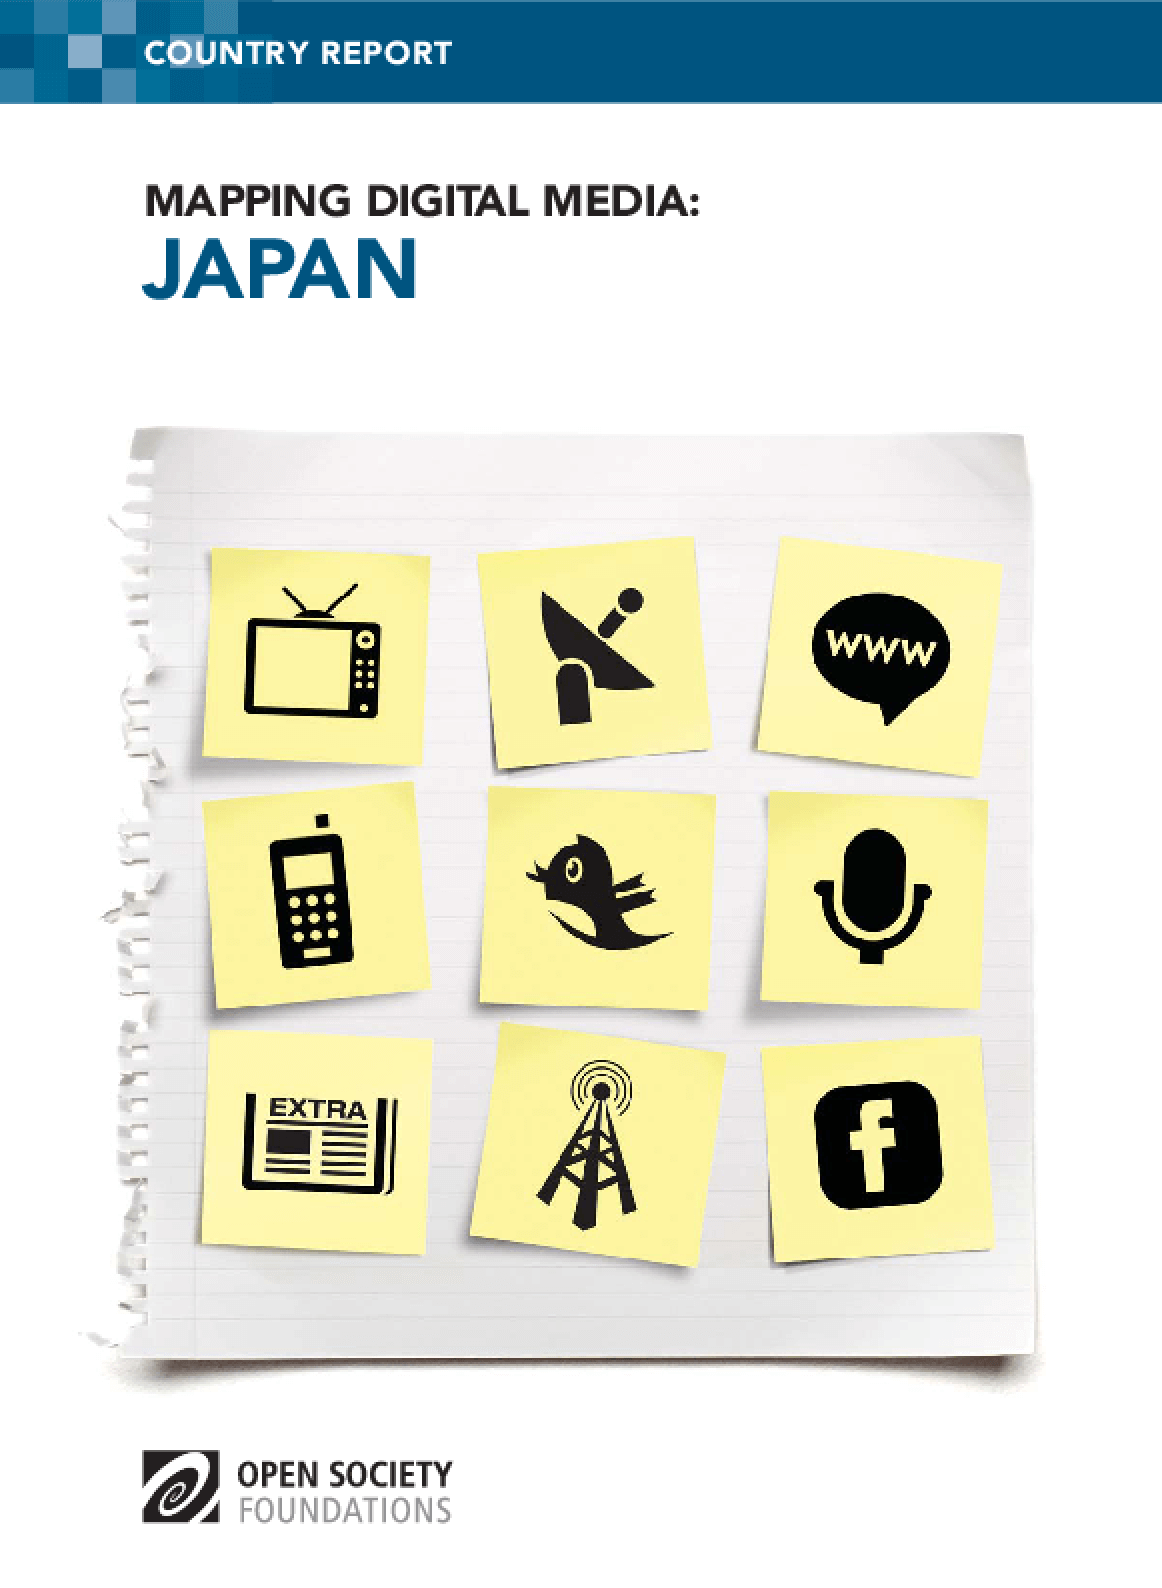 Mapping Digital Media: Japan